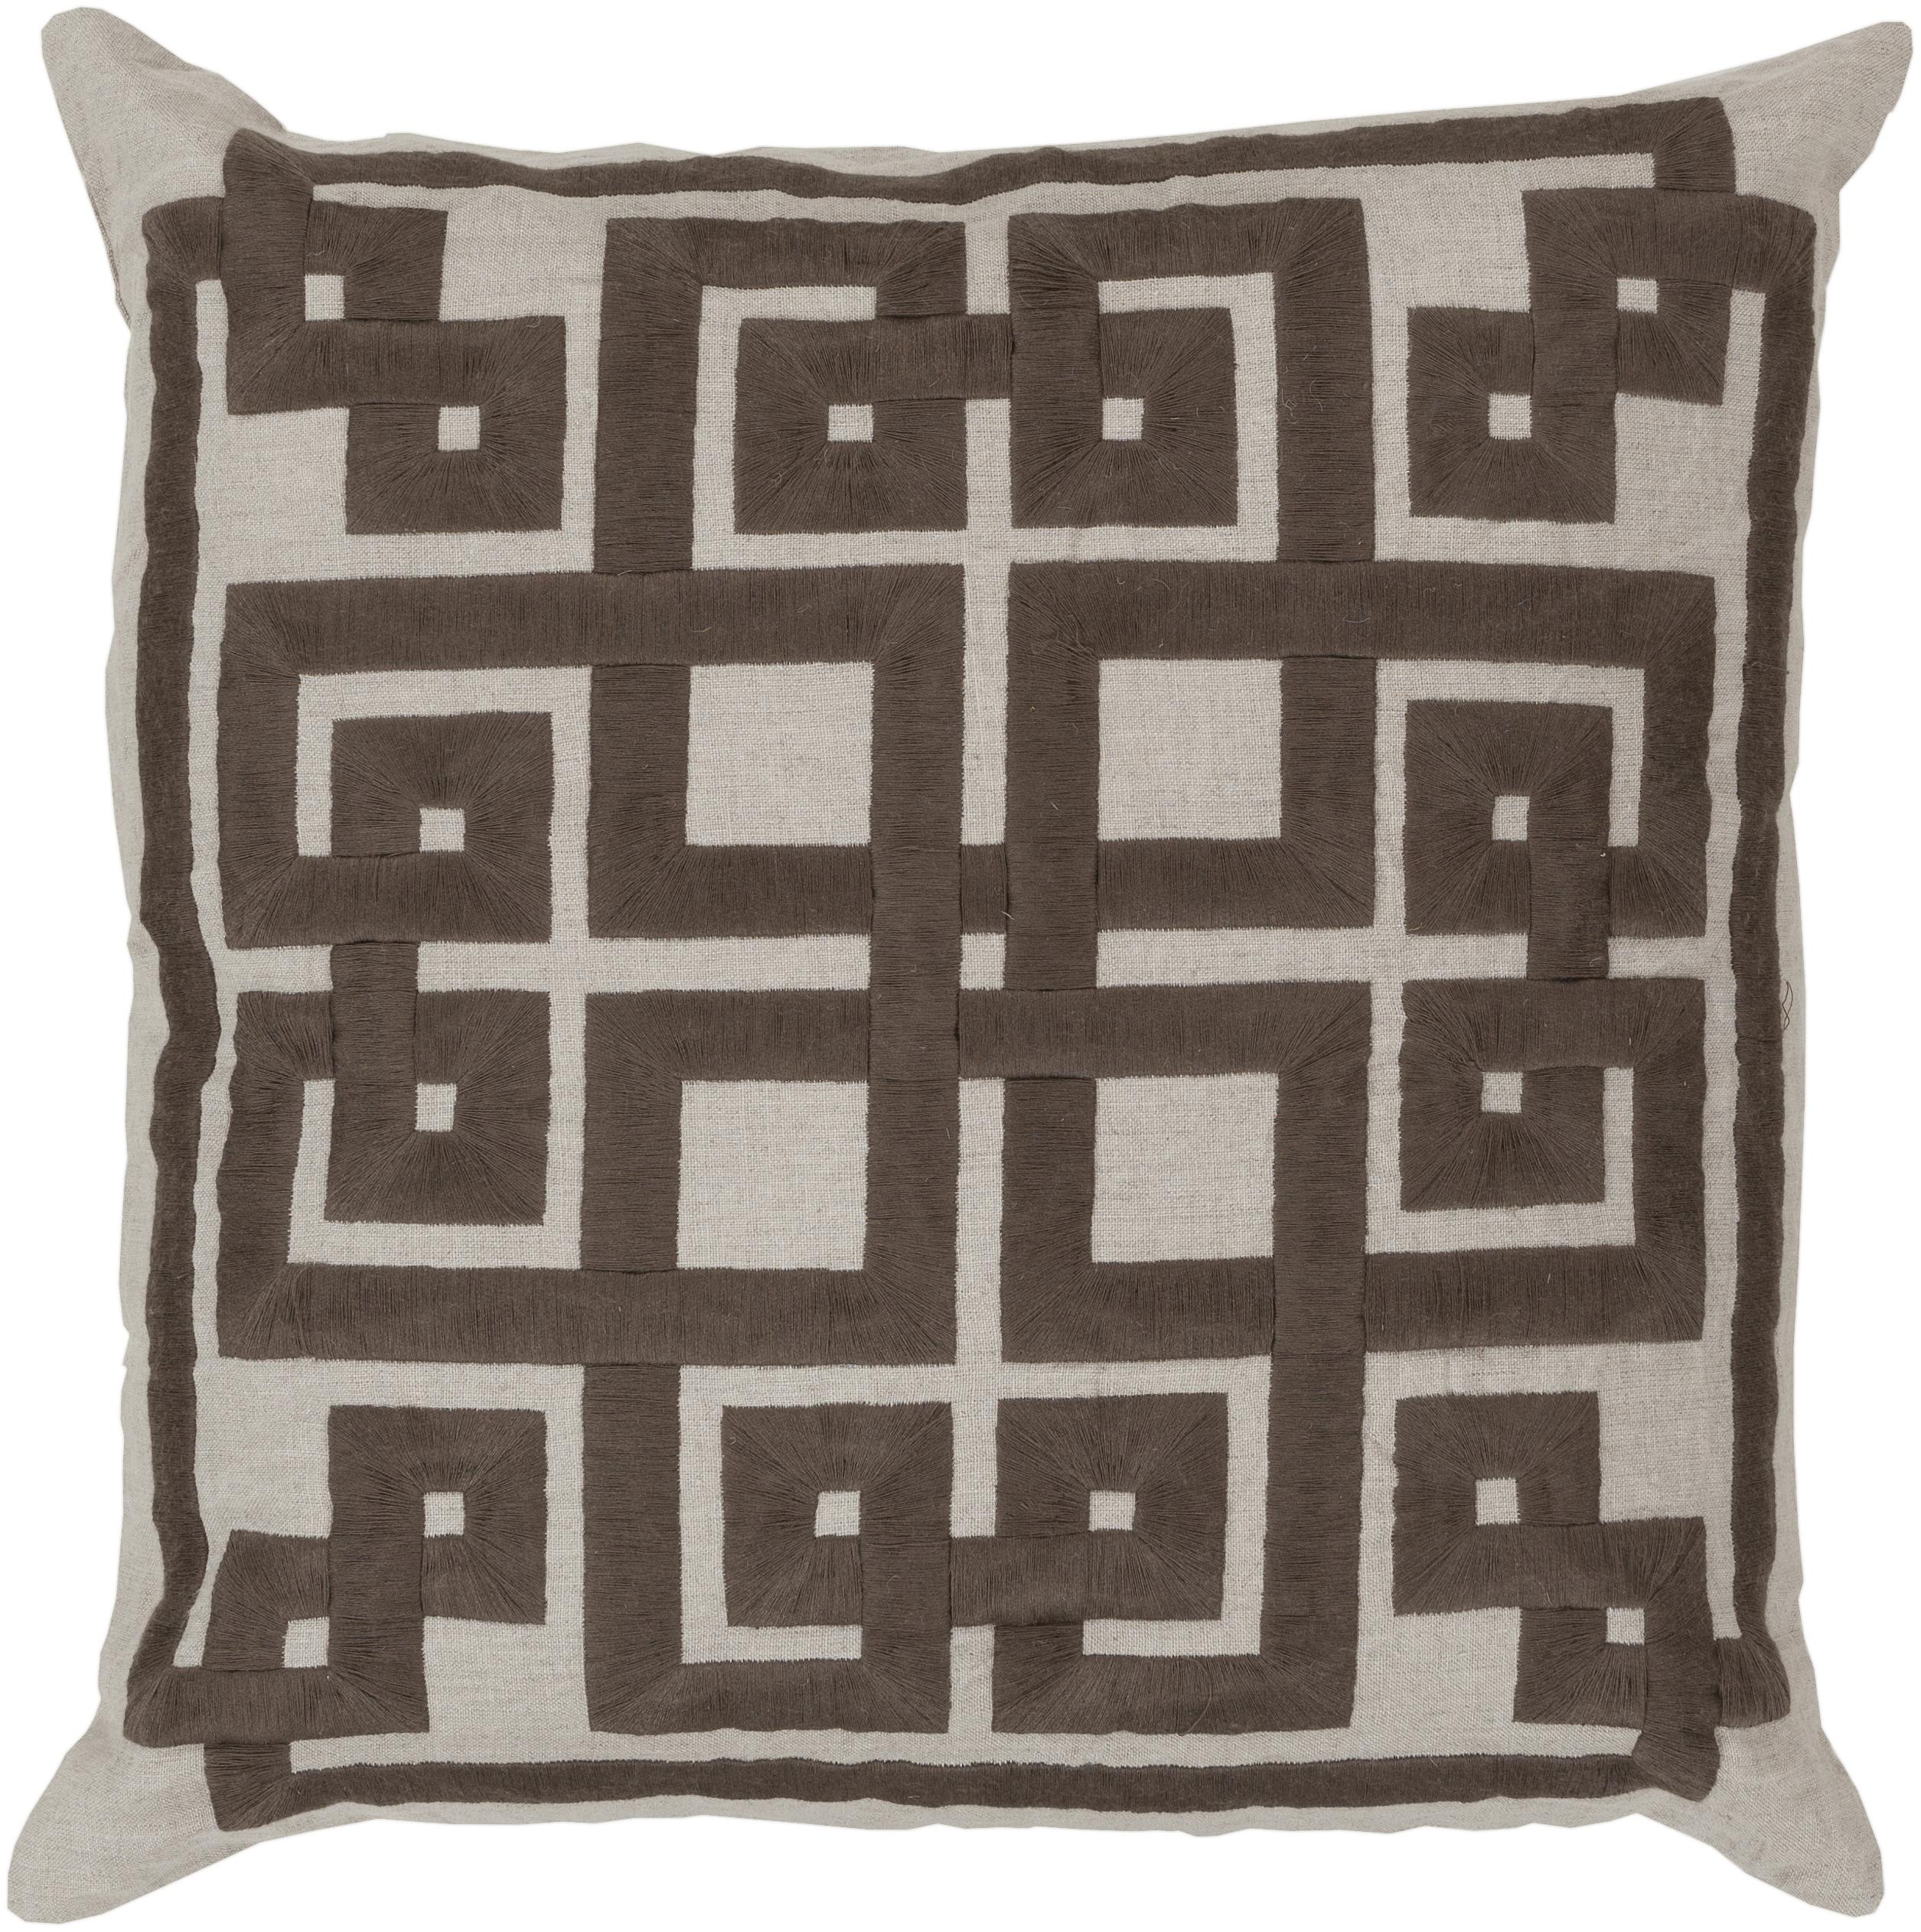 "Surya Pillows 18"" x 18"" Pillow - Item Number: LD001-1818P"